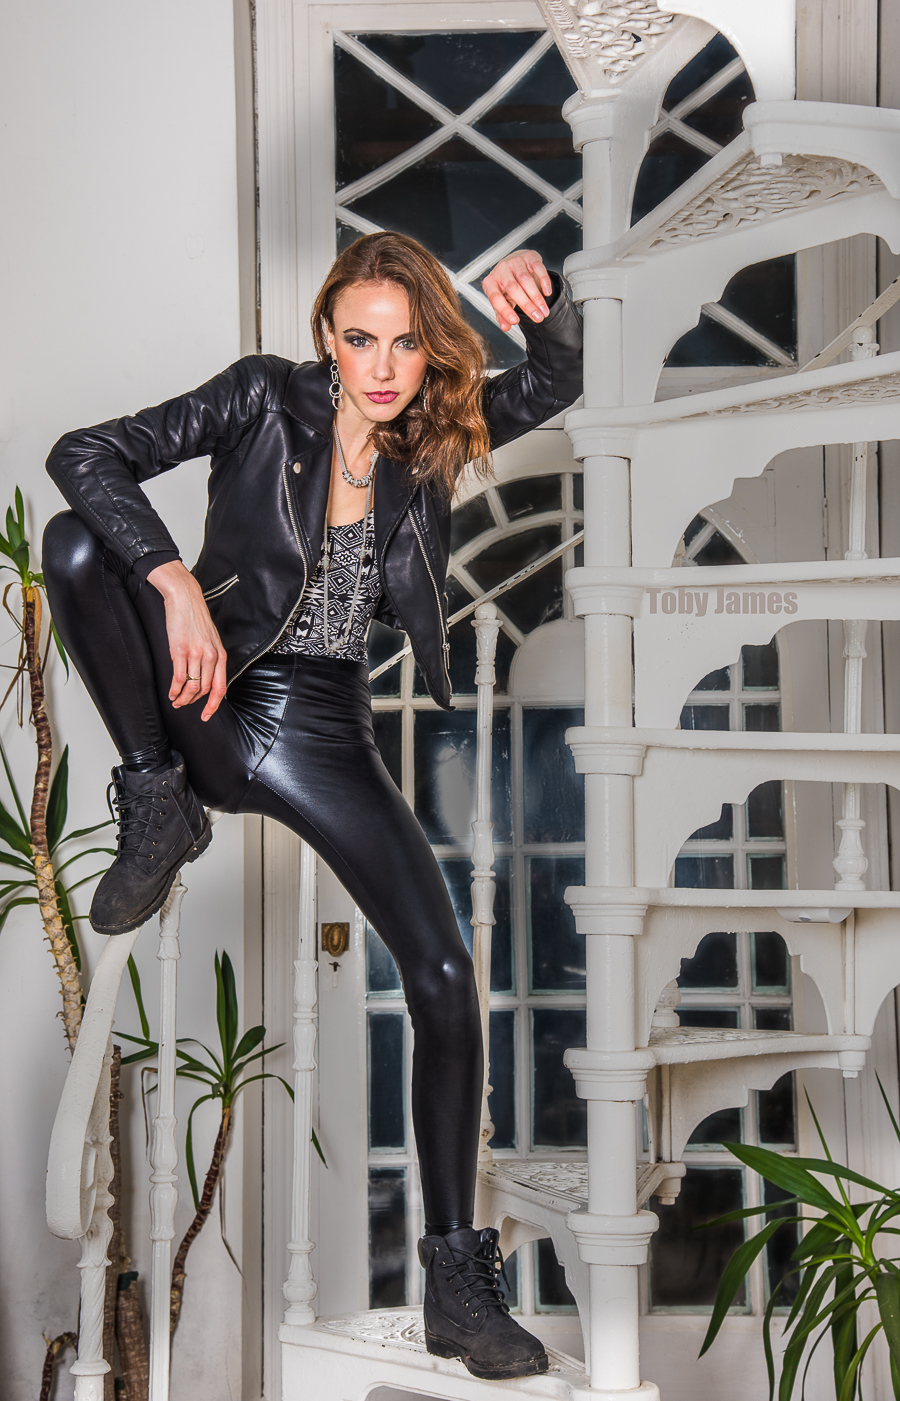 Rock Chick hanging tough / Photography by TobyJ, Model Amberlin Michelle / Uploaded 20th November 2016 @ 05:15 PM